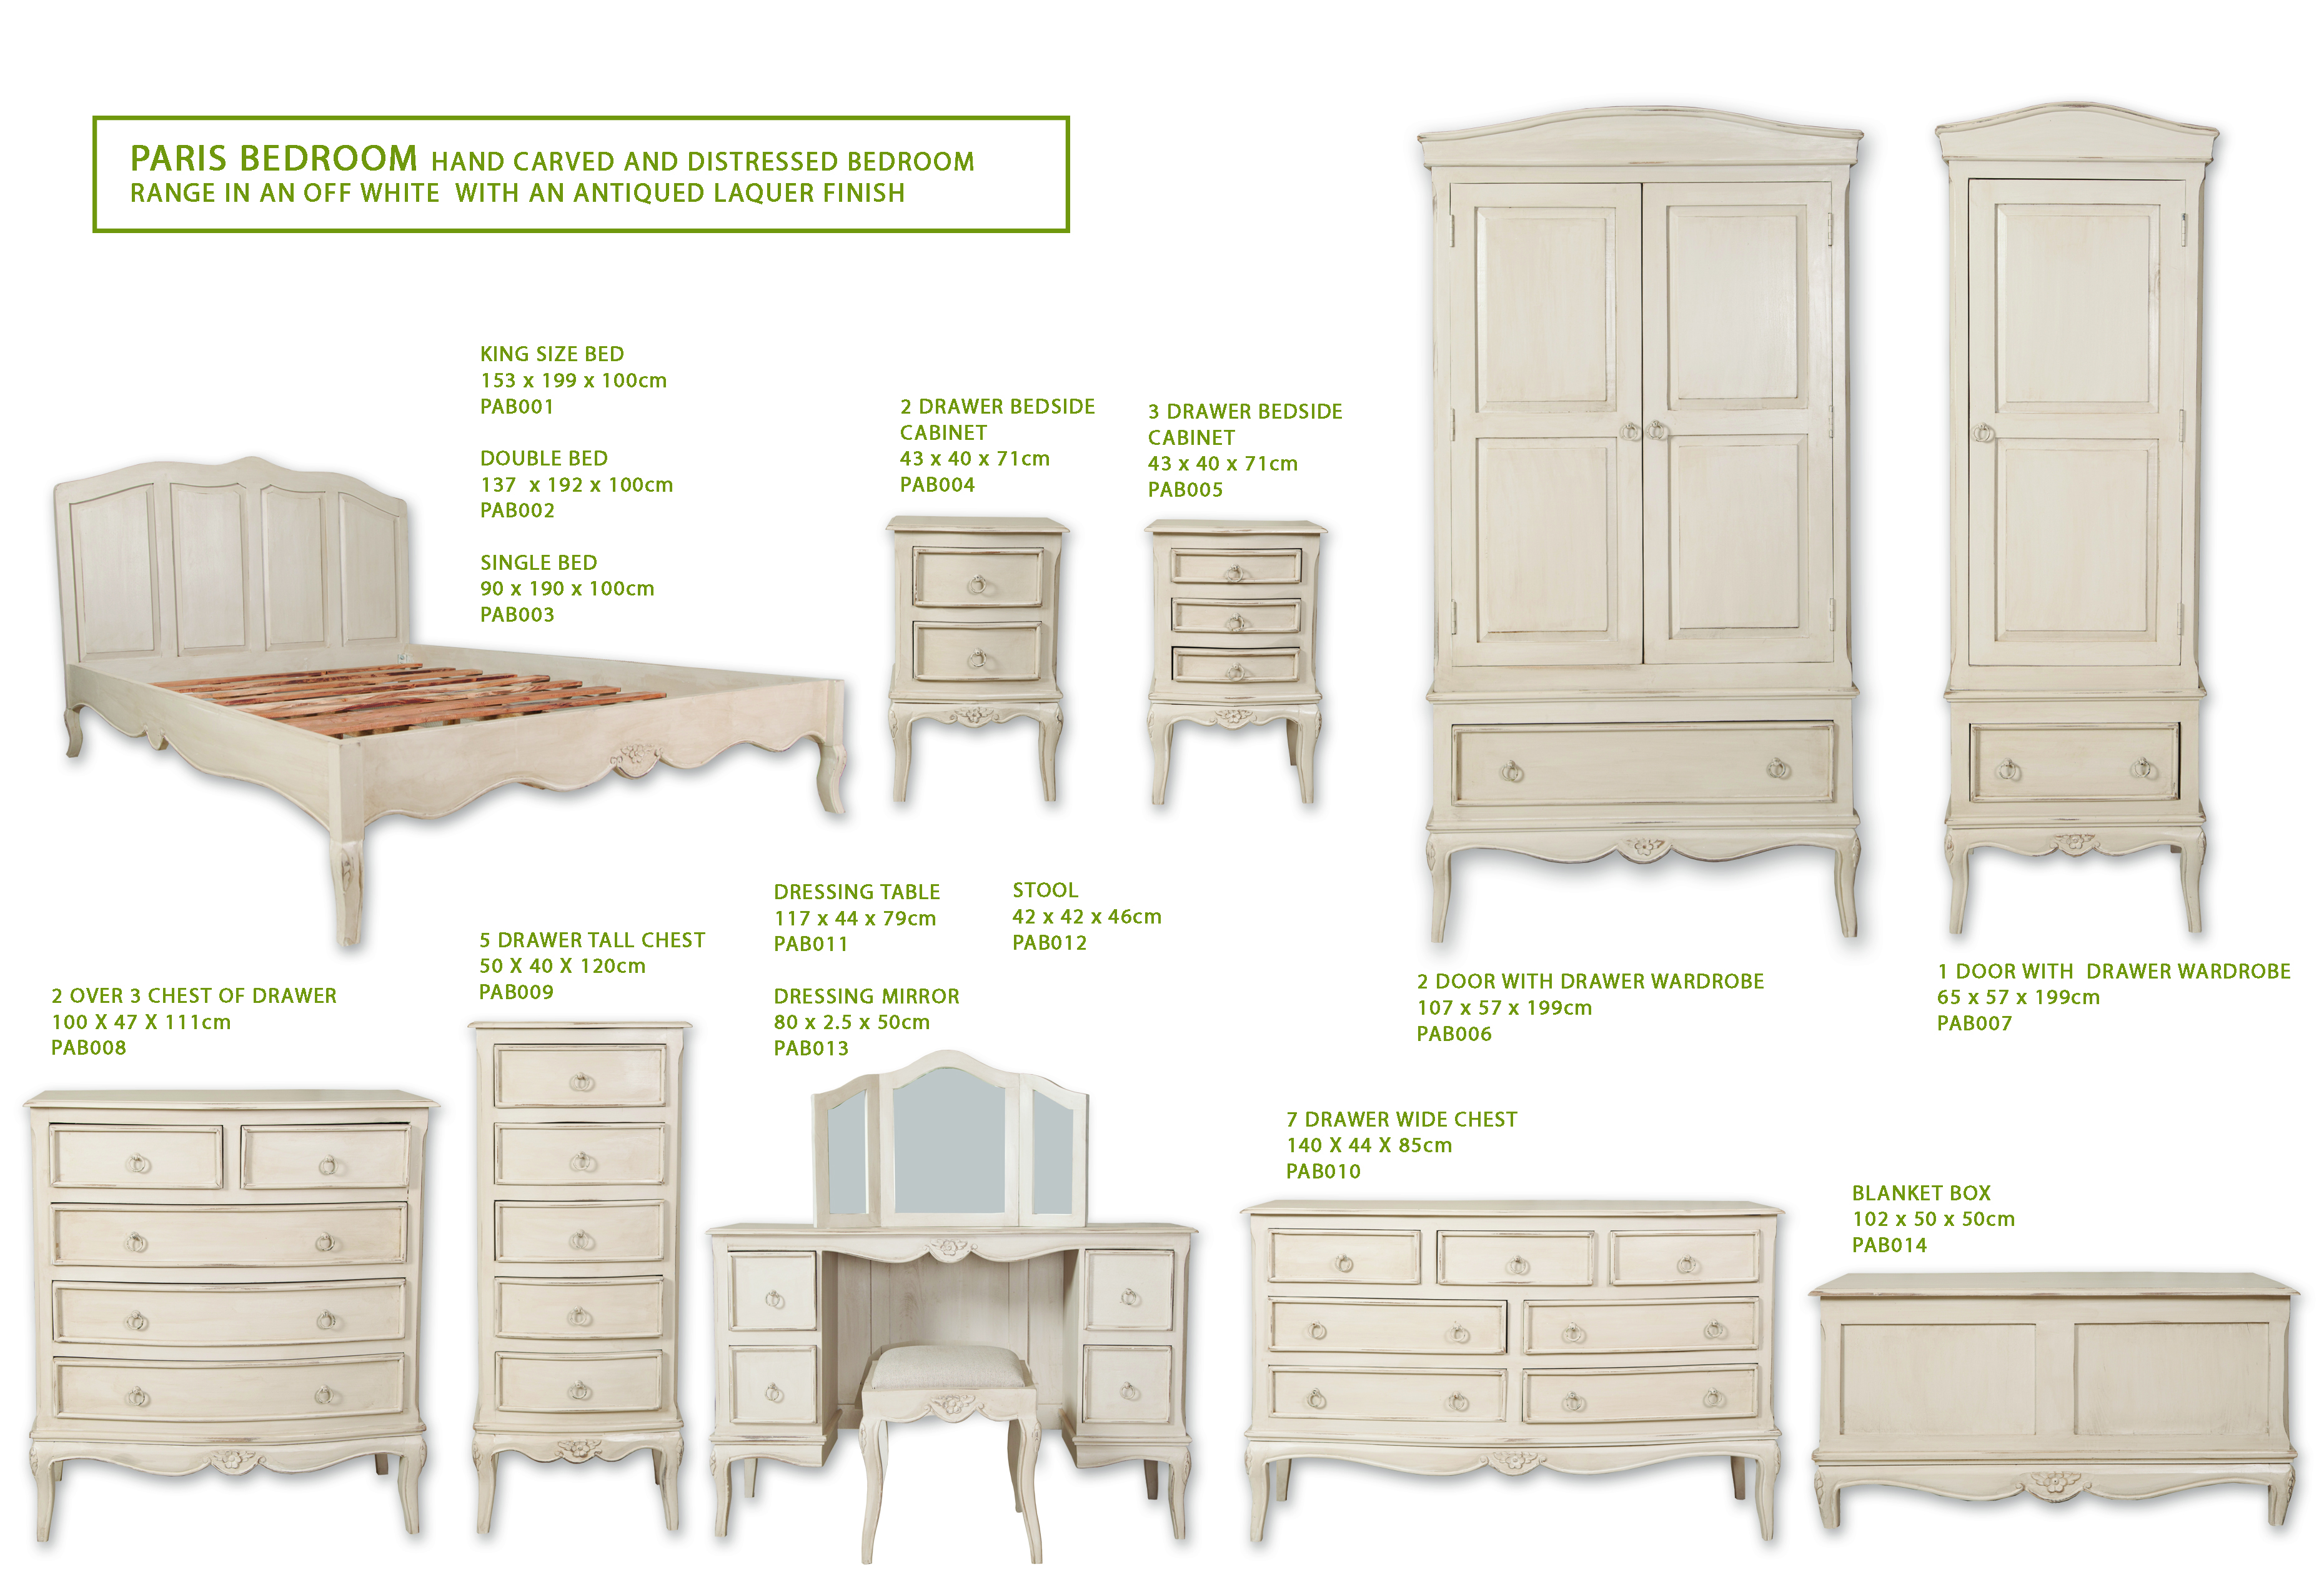 Marseille Bedroom Furniture Home Page